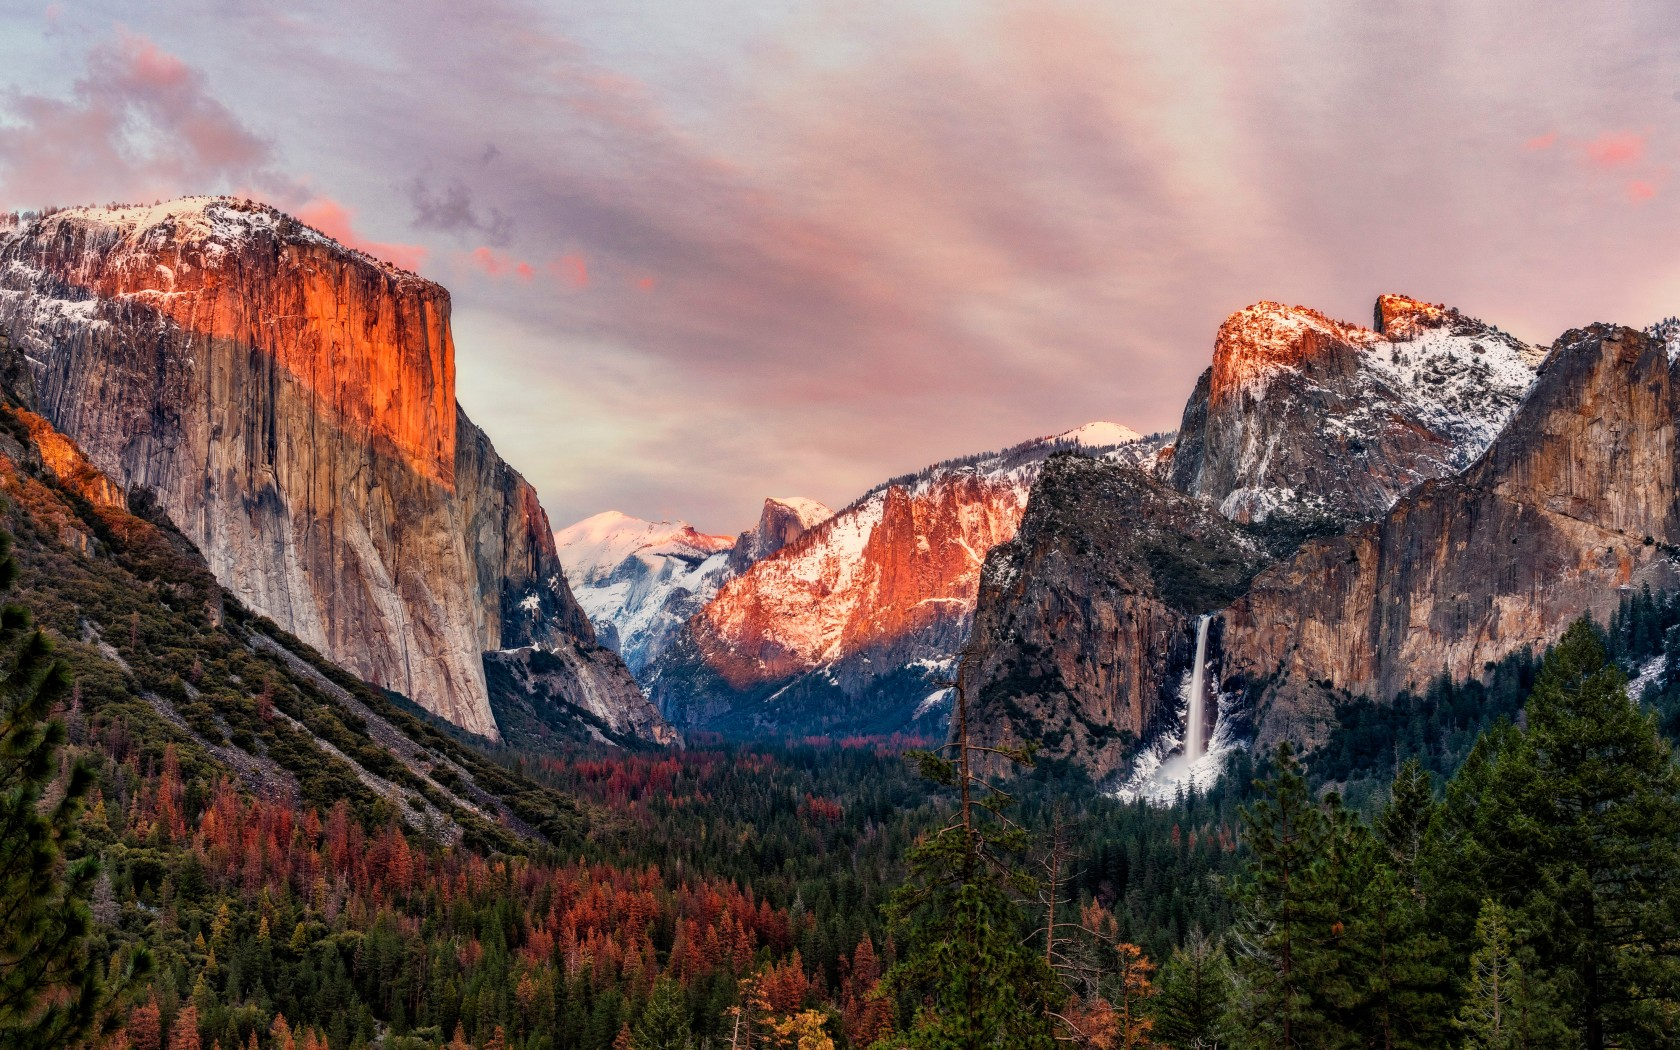 Love Wallpapers Iphone X El Capitan Yosemite Valley 4k Wallpapers Hd Wallpapers